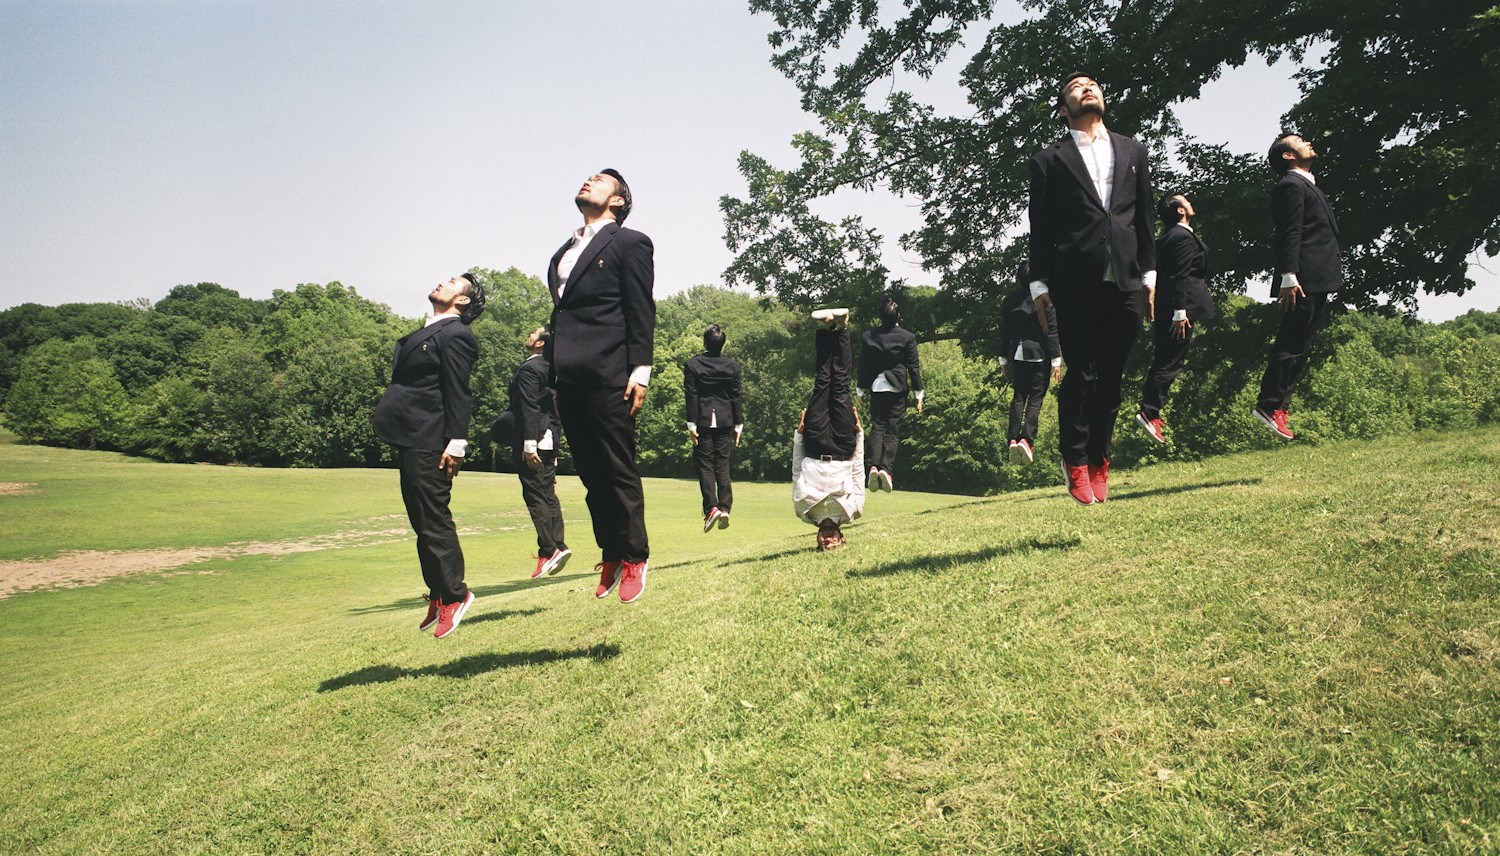 Group of asian men in dark suits jumping straight into the air forming a circle, one asian man in a light colored suit standing on his head in the middle of the group, on a grassy hill.